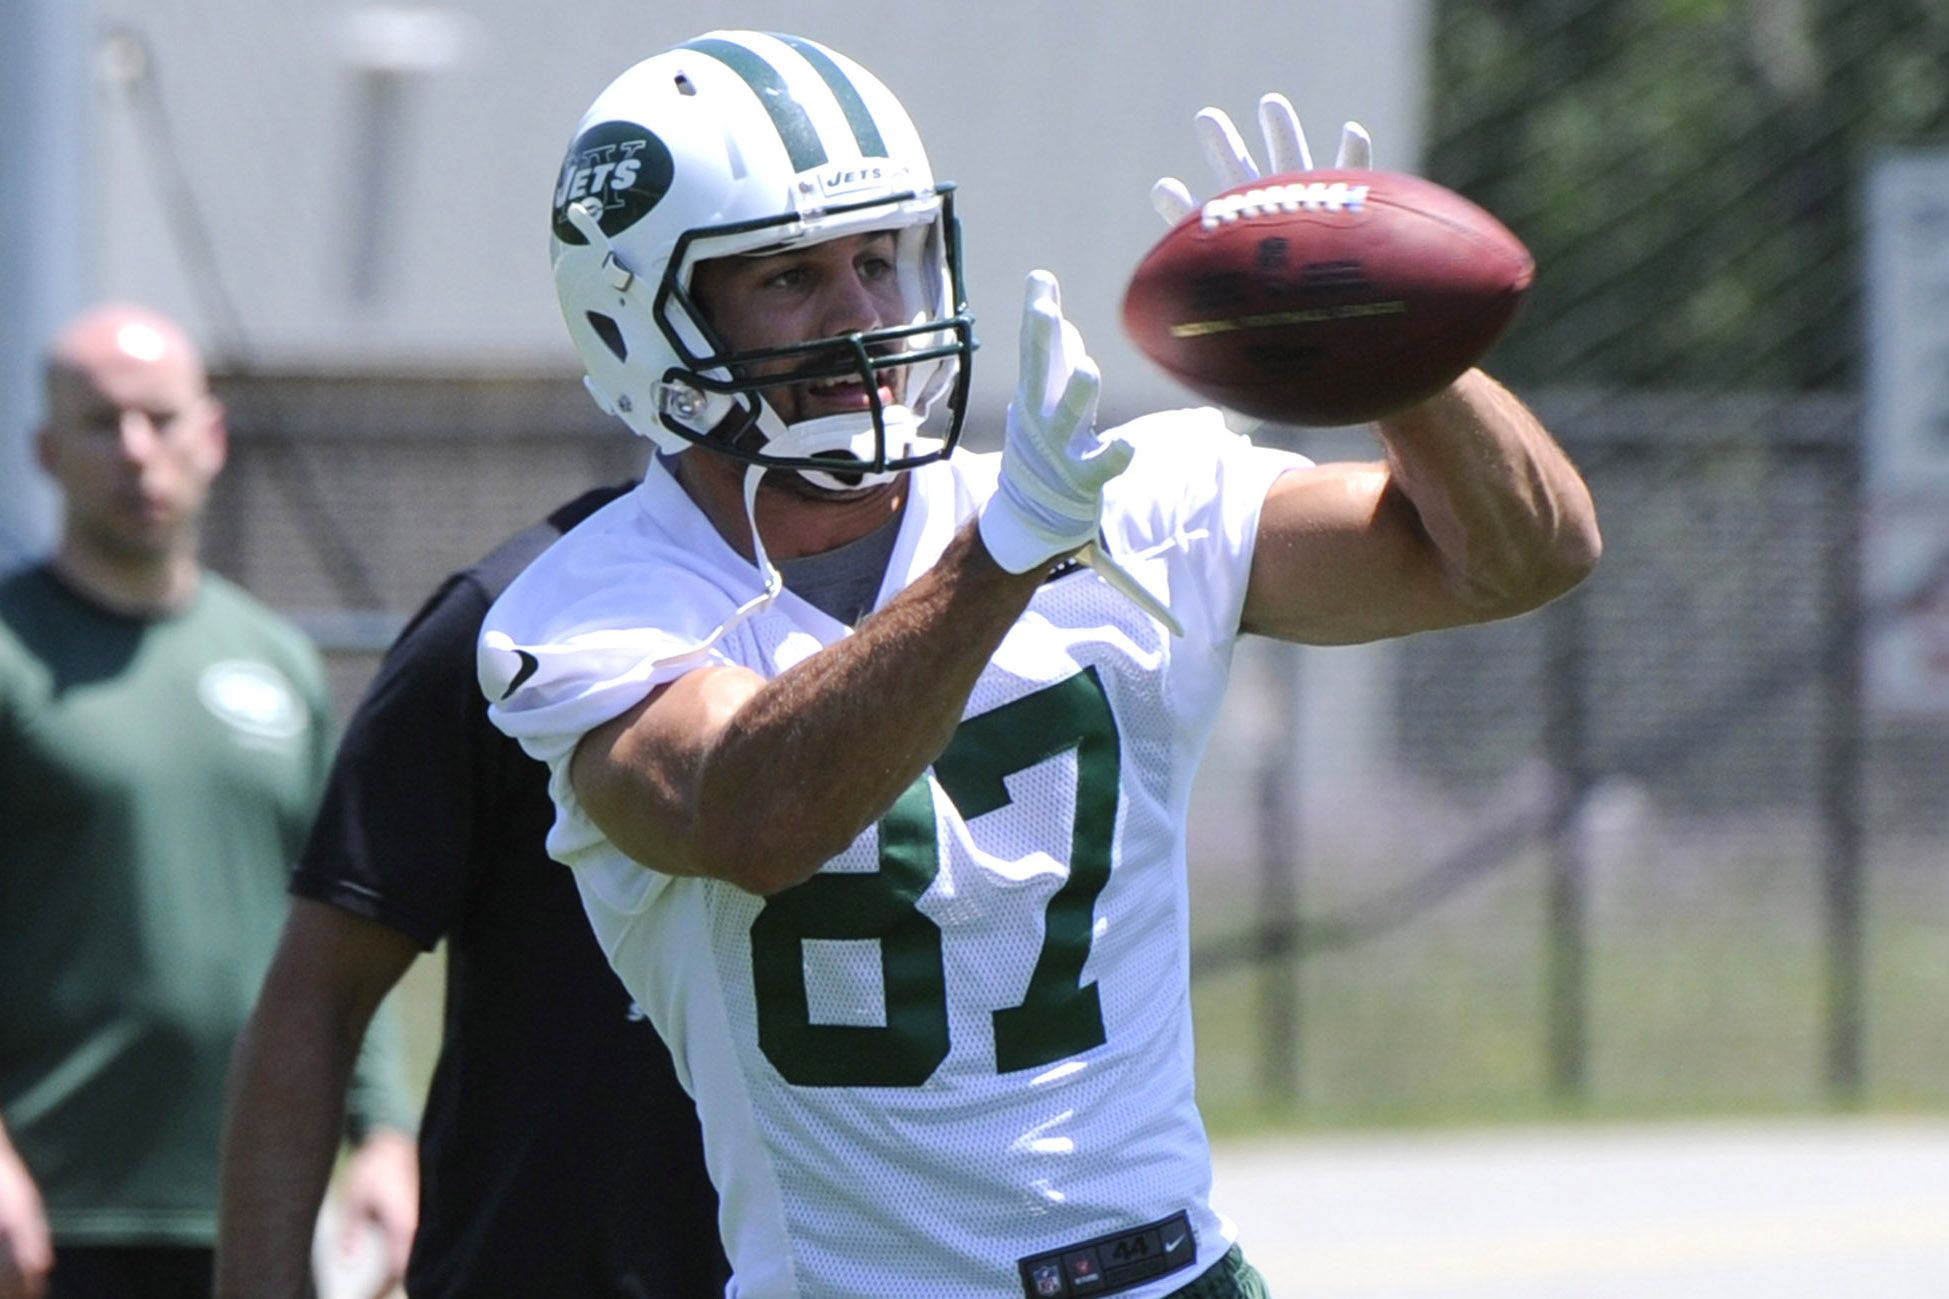 Eric Decker Jets Catch - wallpaper.